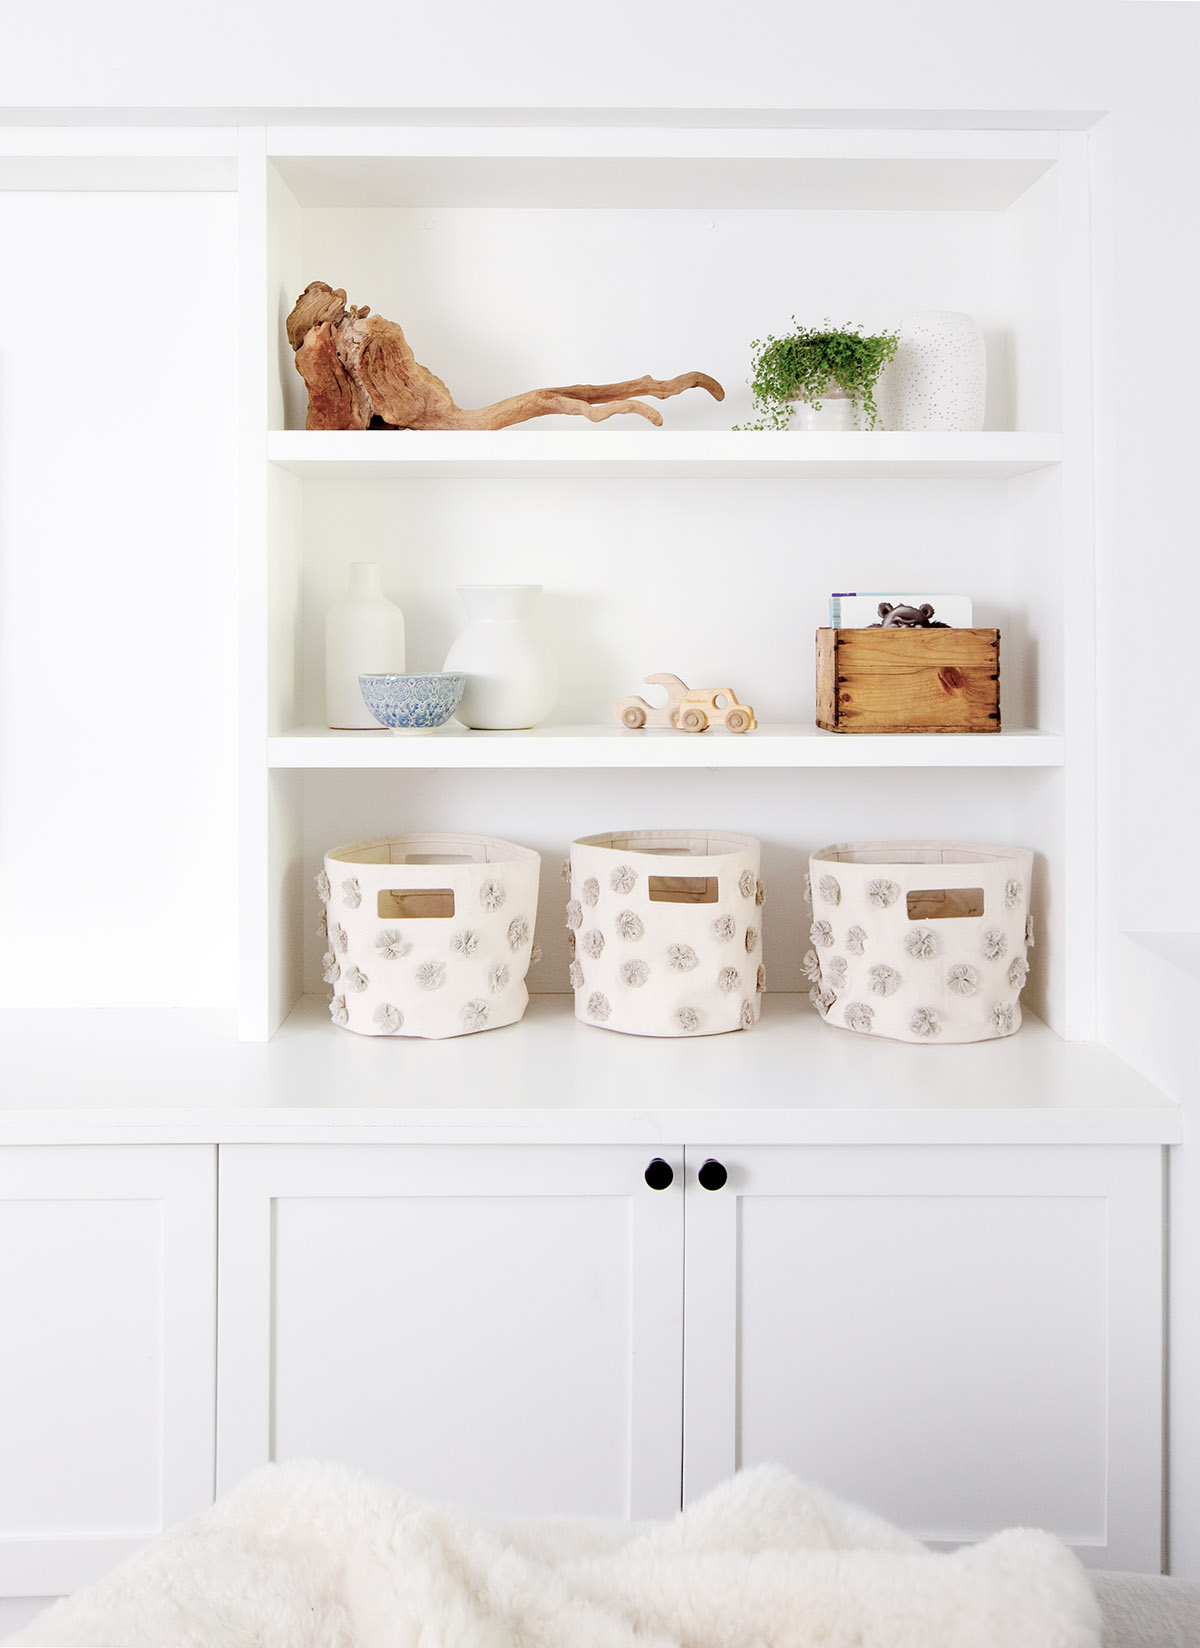 playroom shelves with pom pom storage baskets